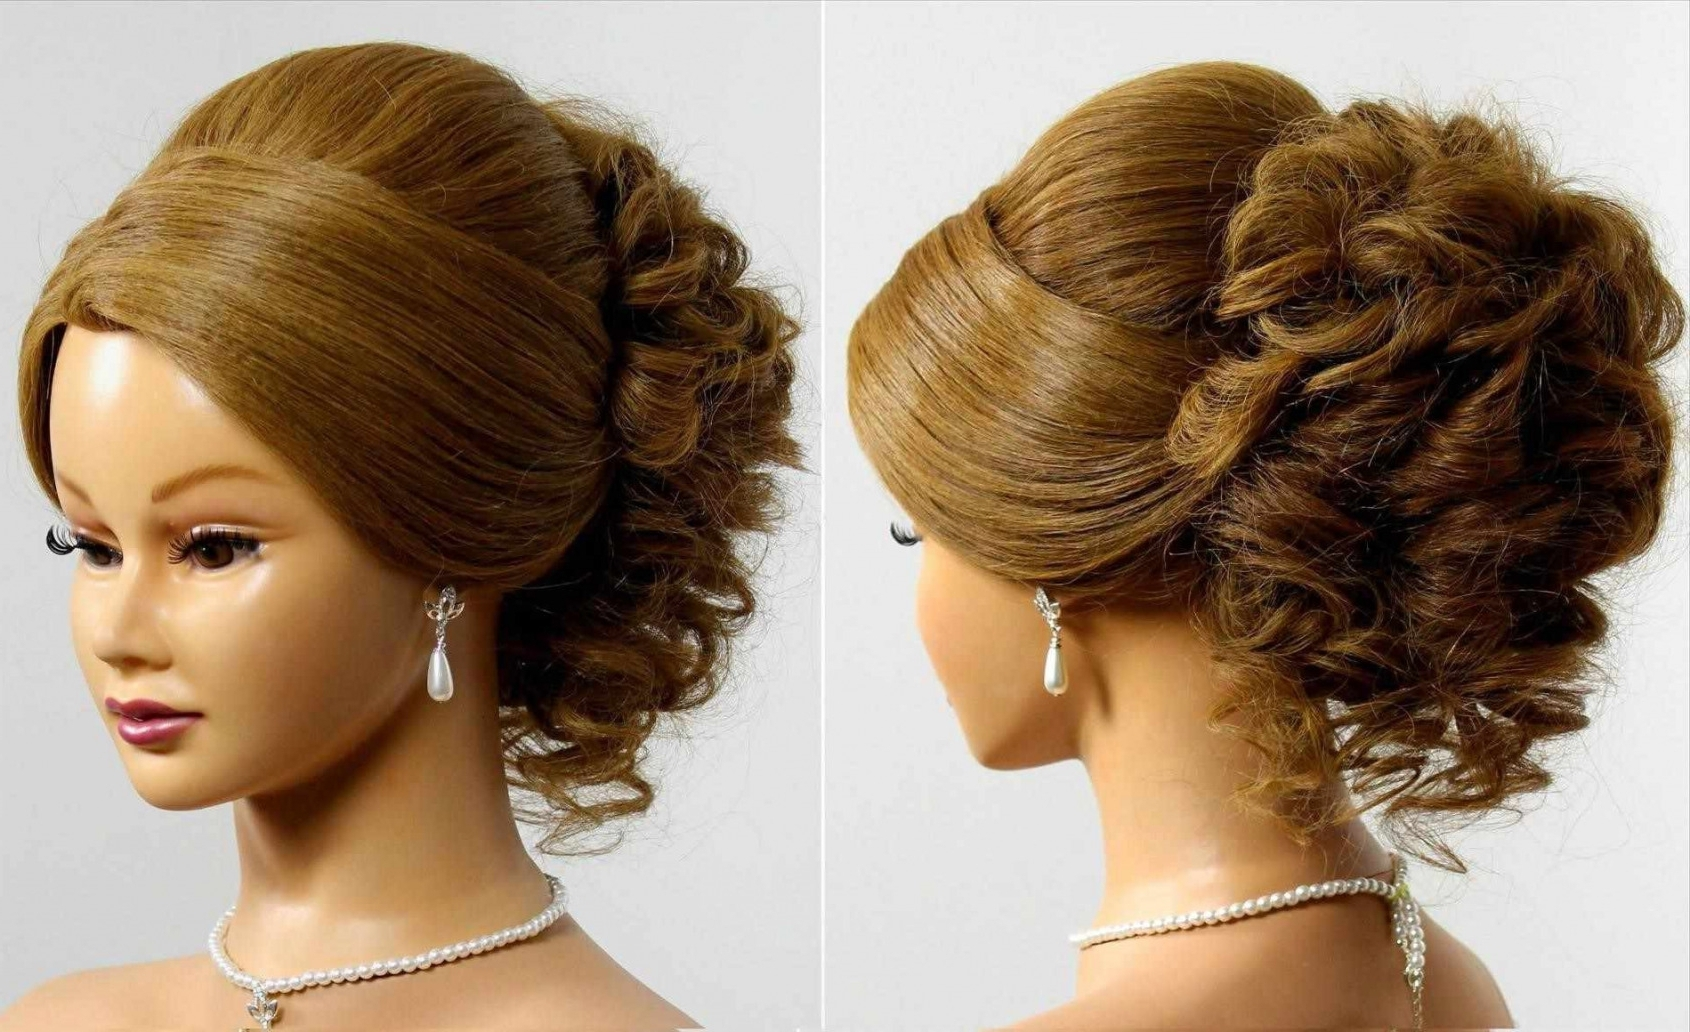 Photo Gallery Of Wedding Hairstyles For Round Faces Viewing 5 Of 15